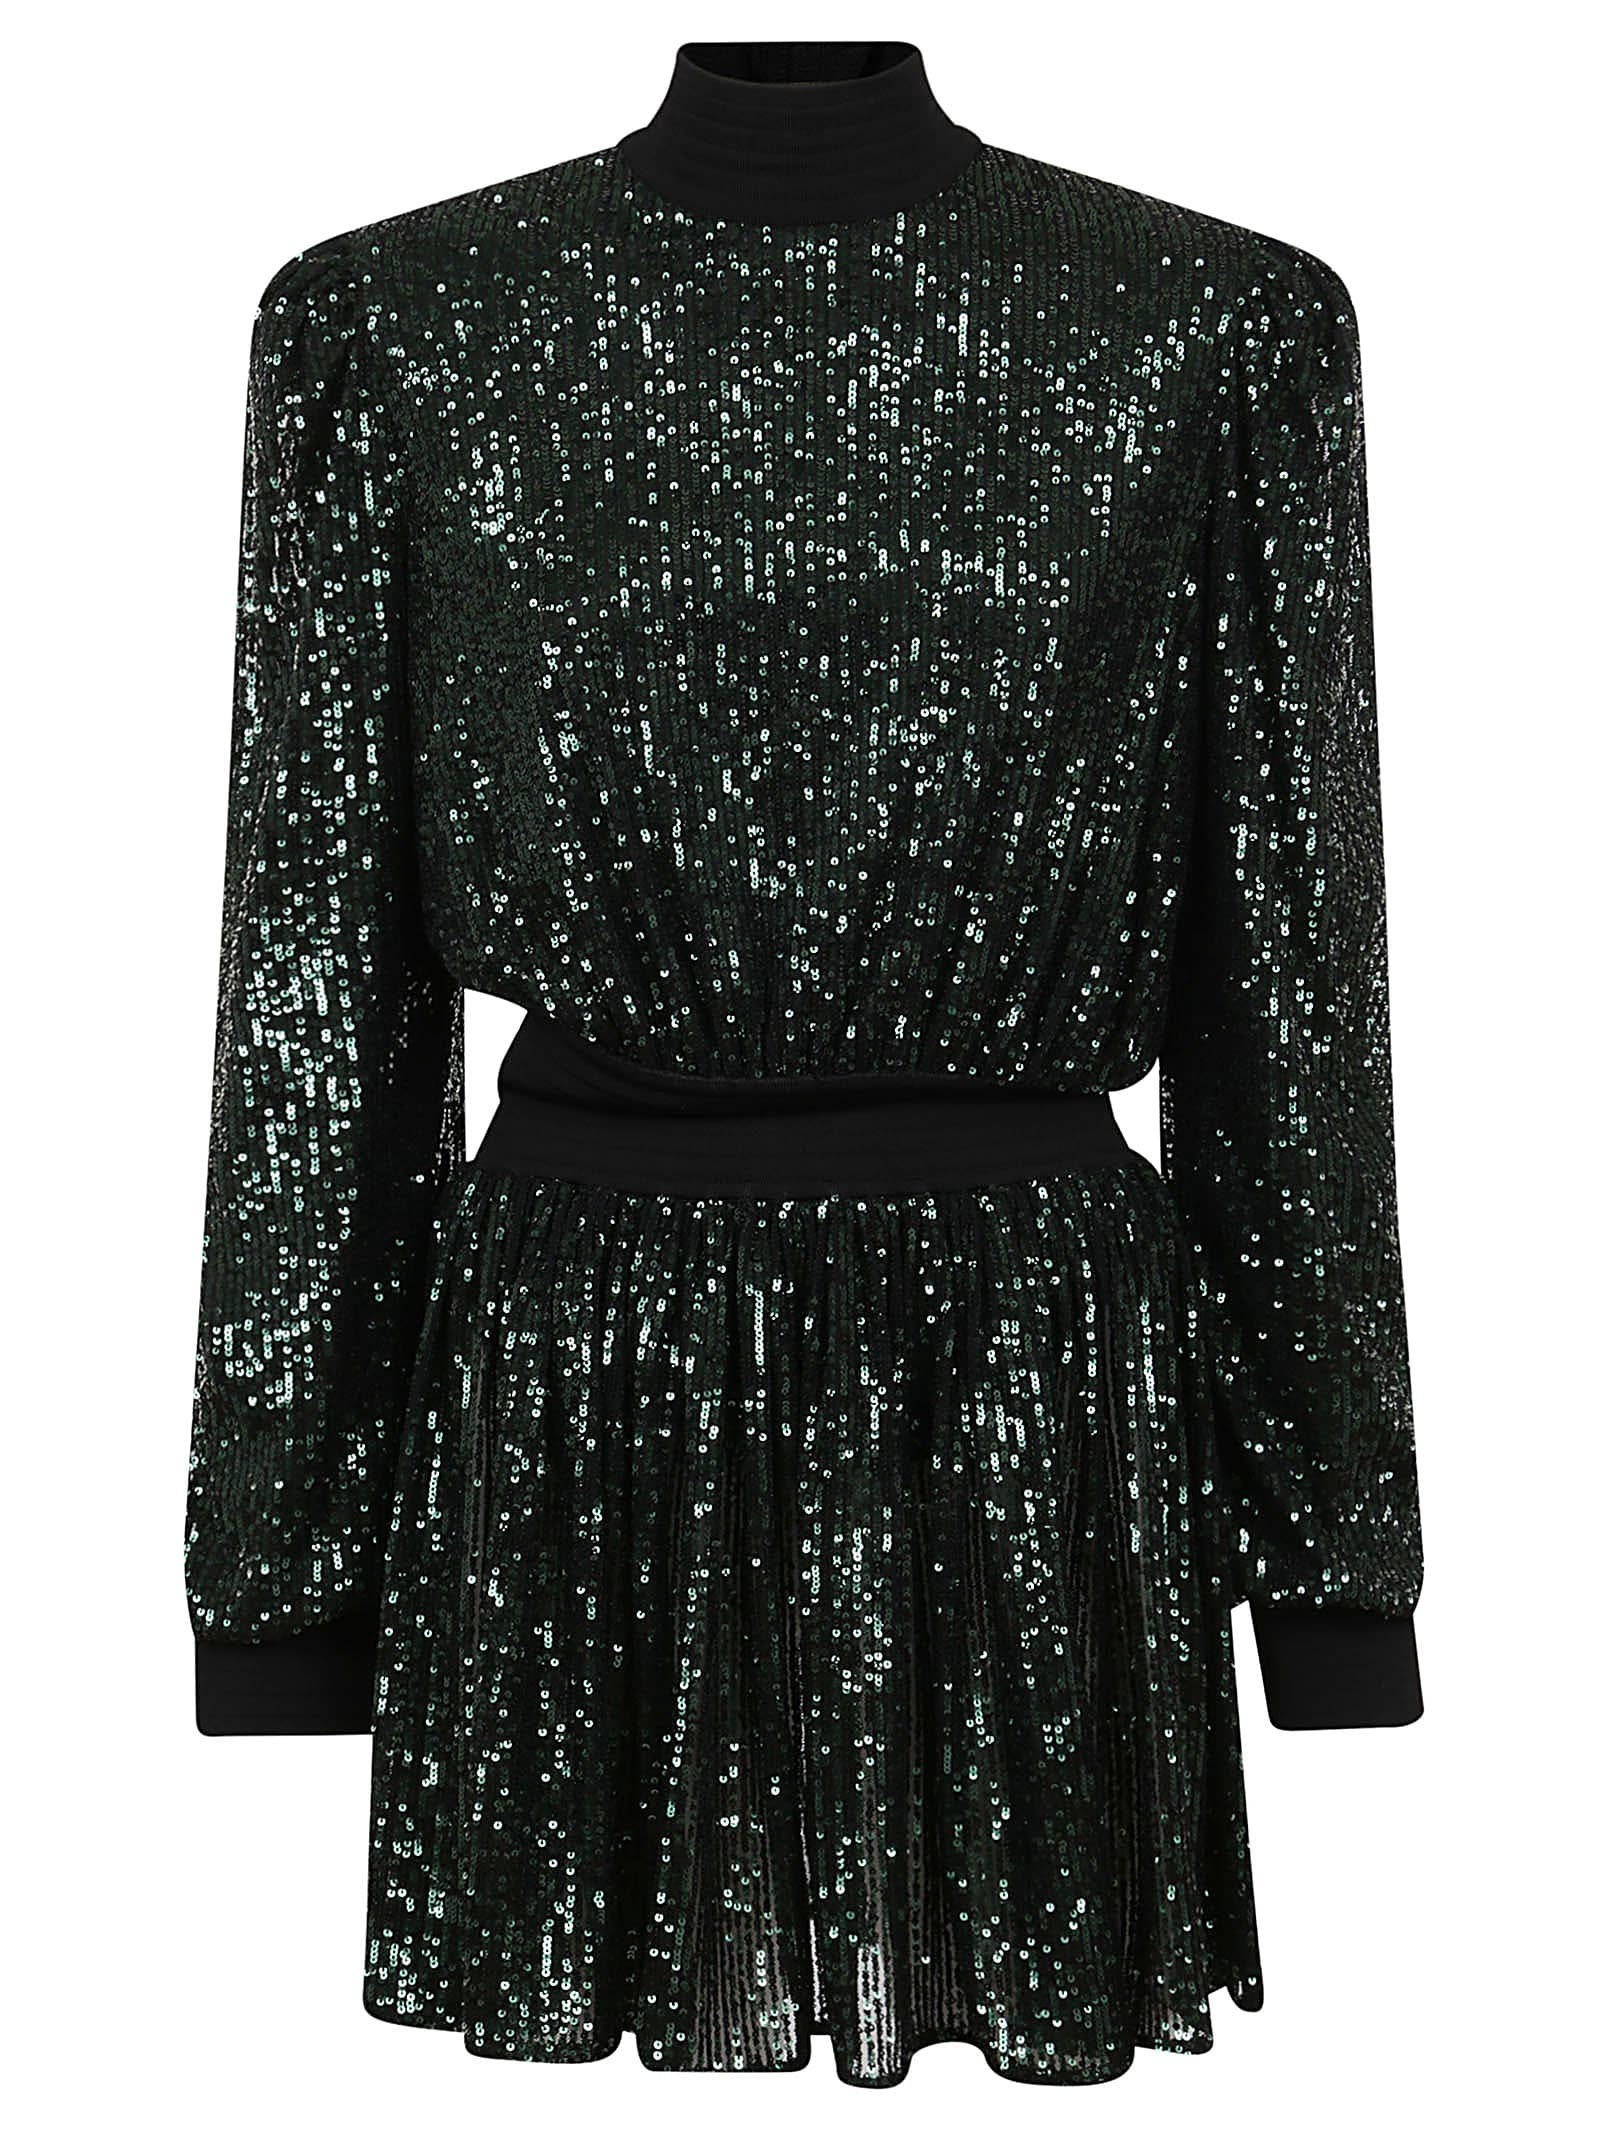 Balmain Sequin Mini Dress